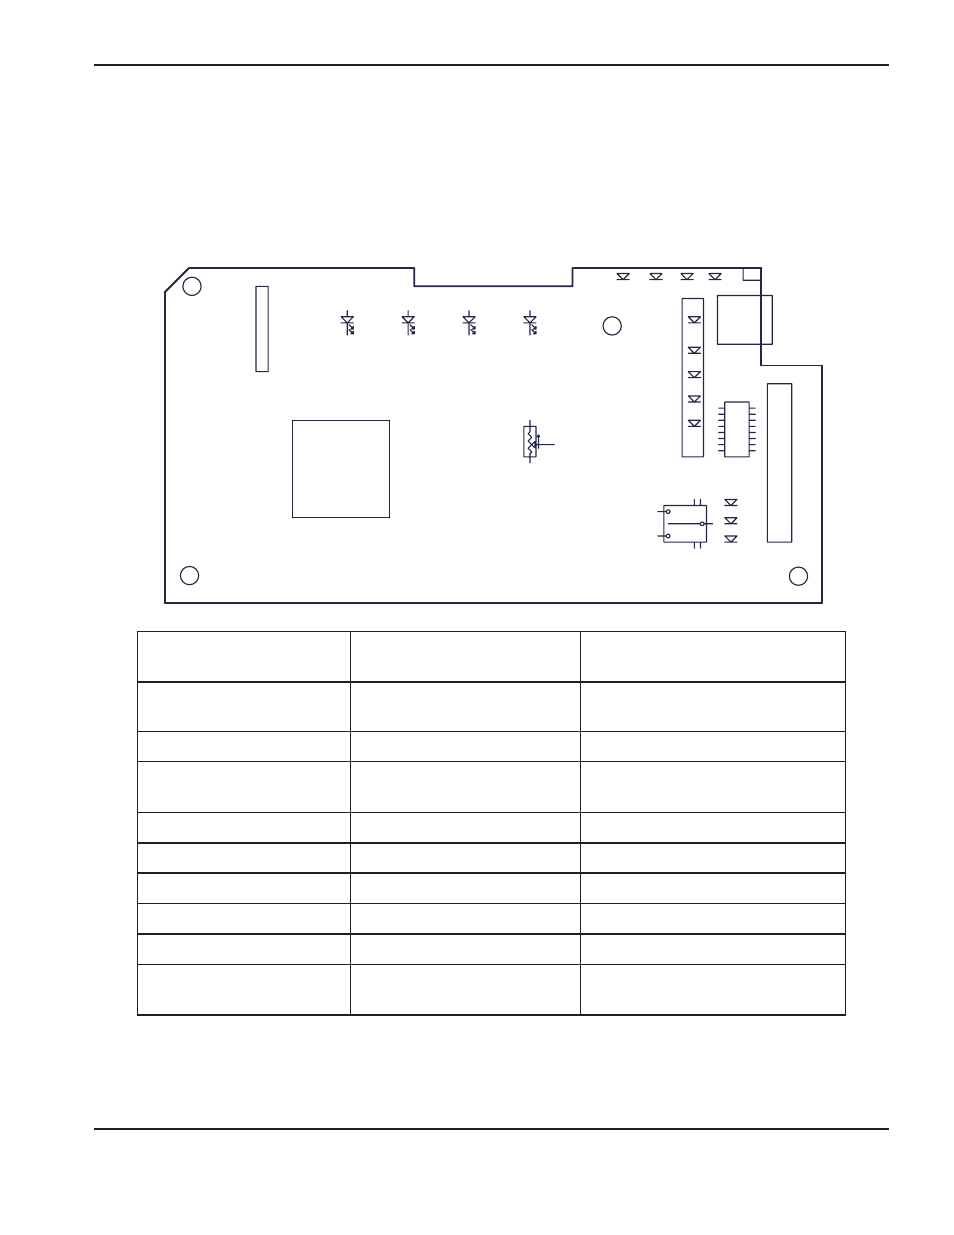 Control Board Diagram  200 U2013240 V Csa And 230 V Ce  Powermax  Wiring Diagrams 8